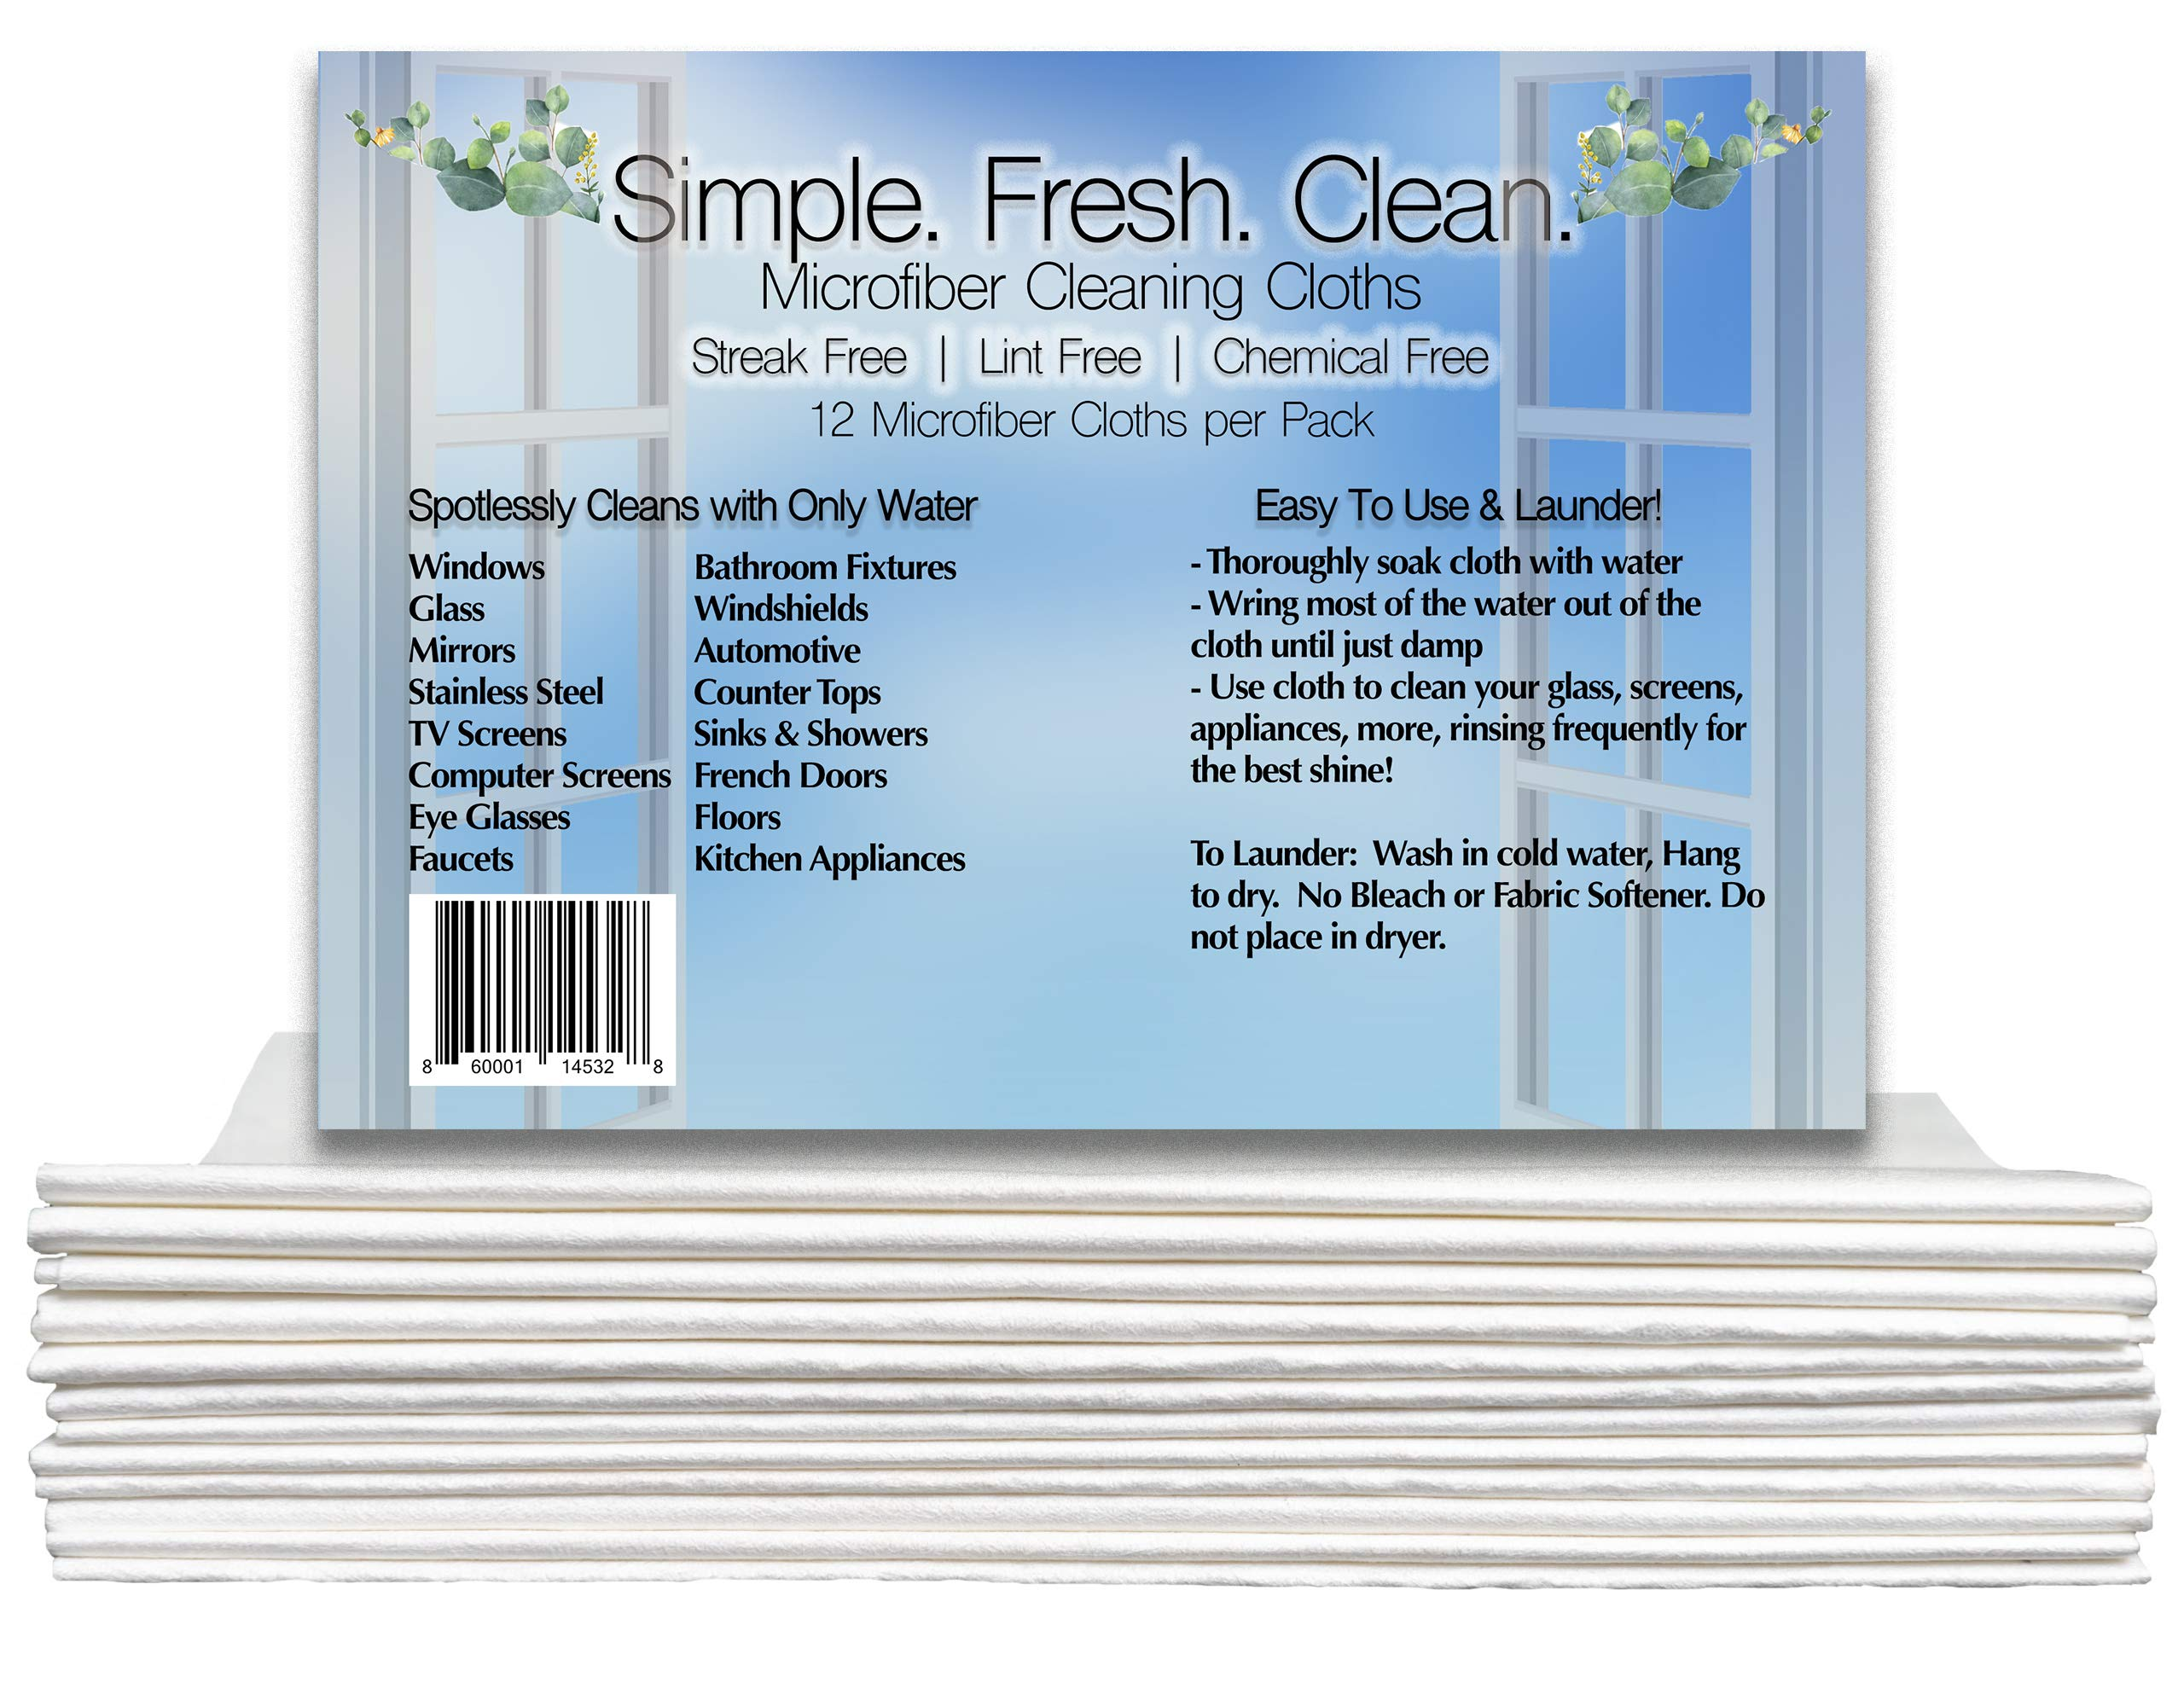 Streak Free Microfiber Cleaning Cloths White Multipack - Best Microfiber Cleaning Cloths for House | Specially Designed Microfiber Cleaning Cloths for Glass, Windows, Cars, Electronics (12) by Simple.Fresh.Clean.